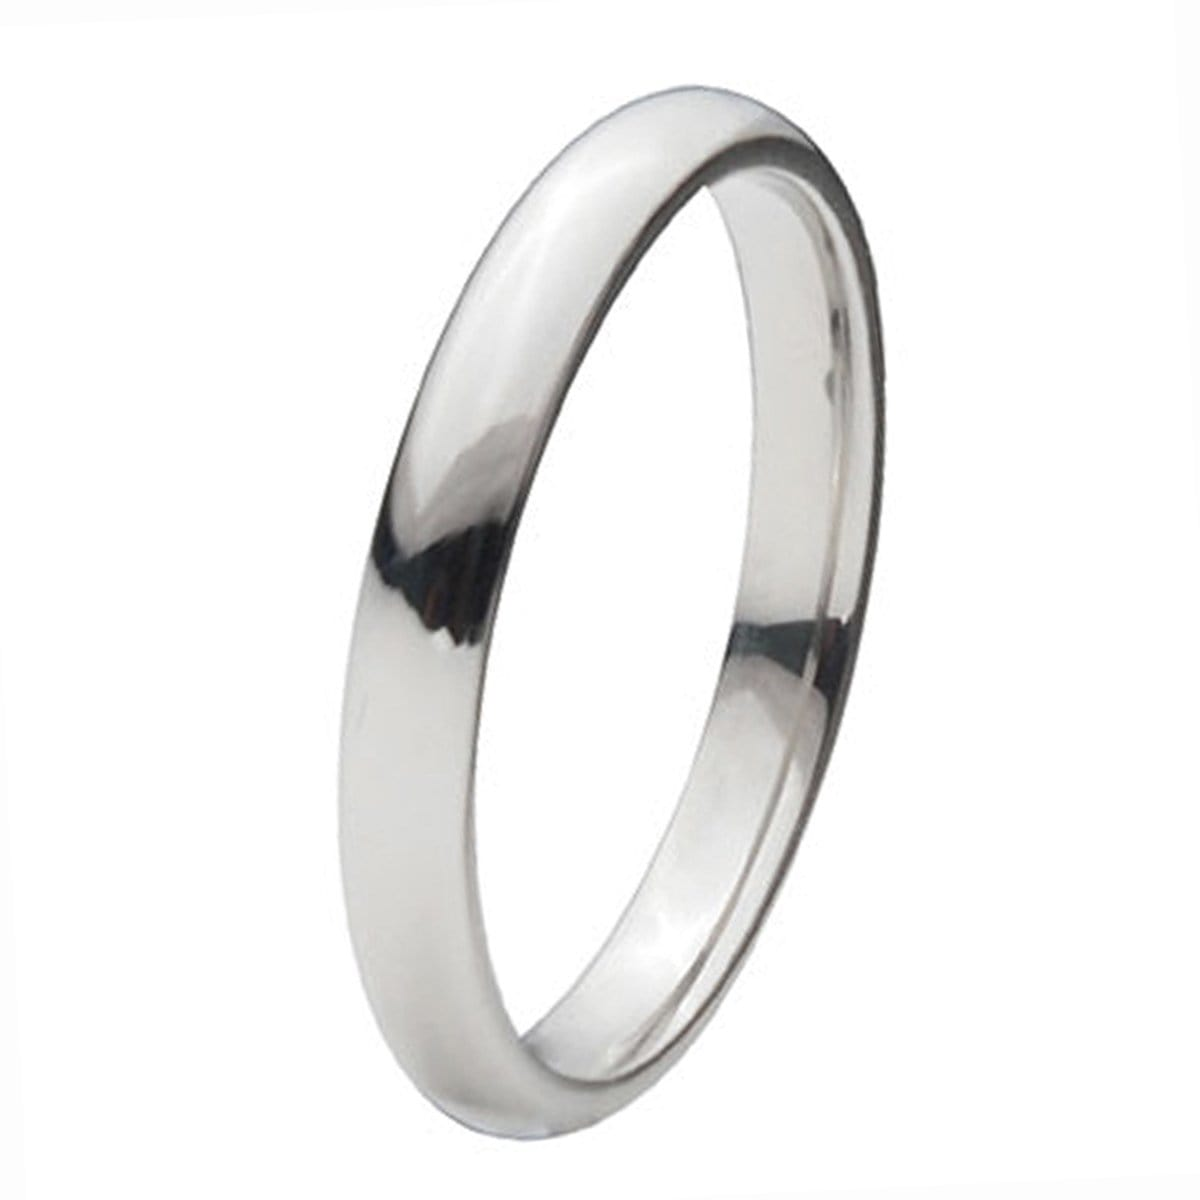 Silver Titanium Classic 3mm Band Ring